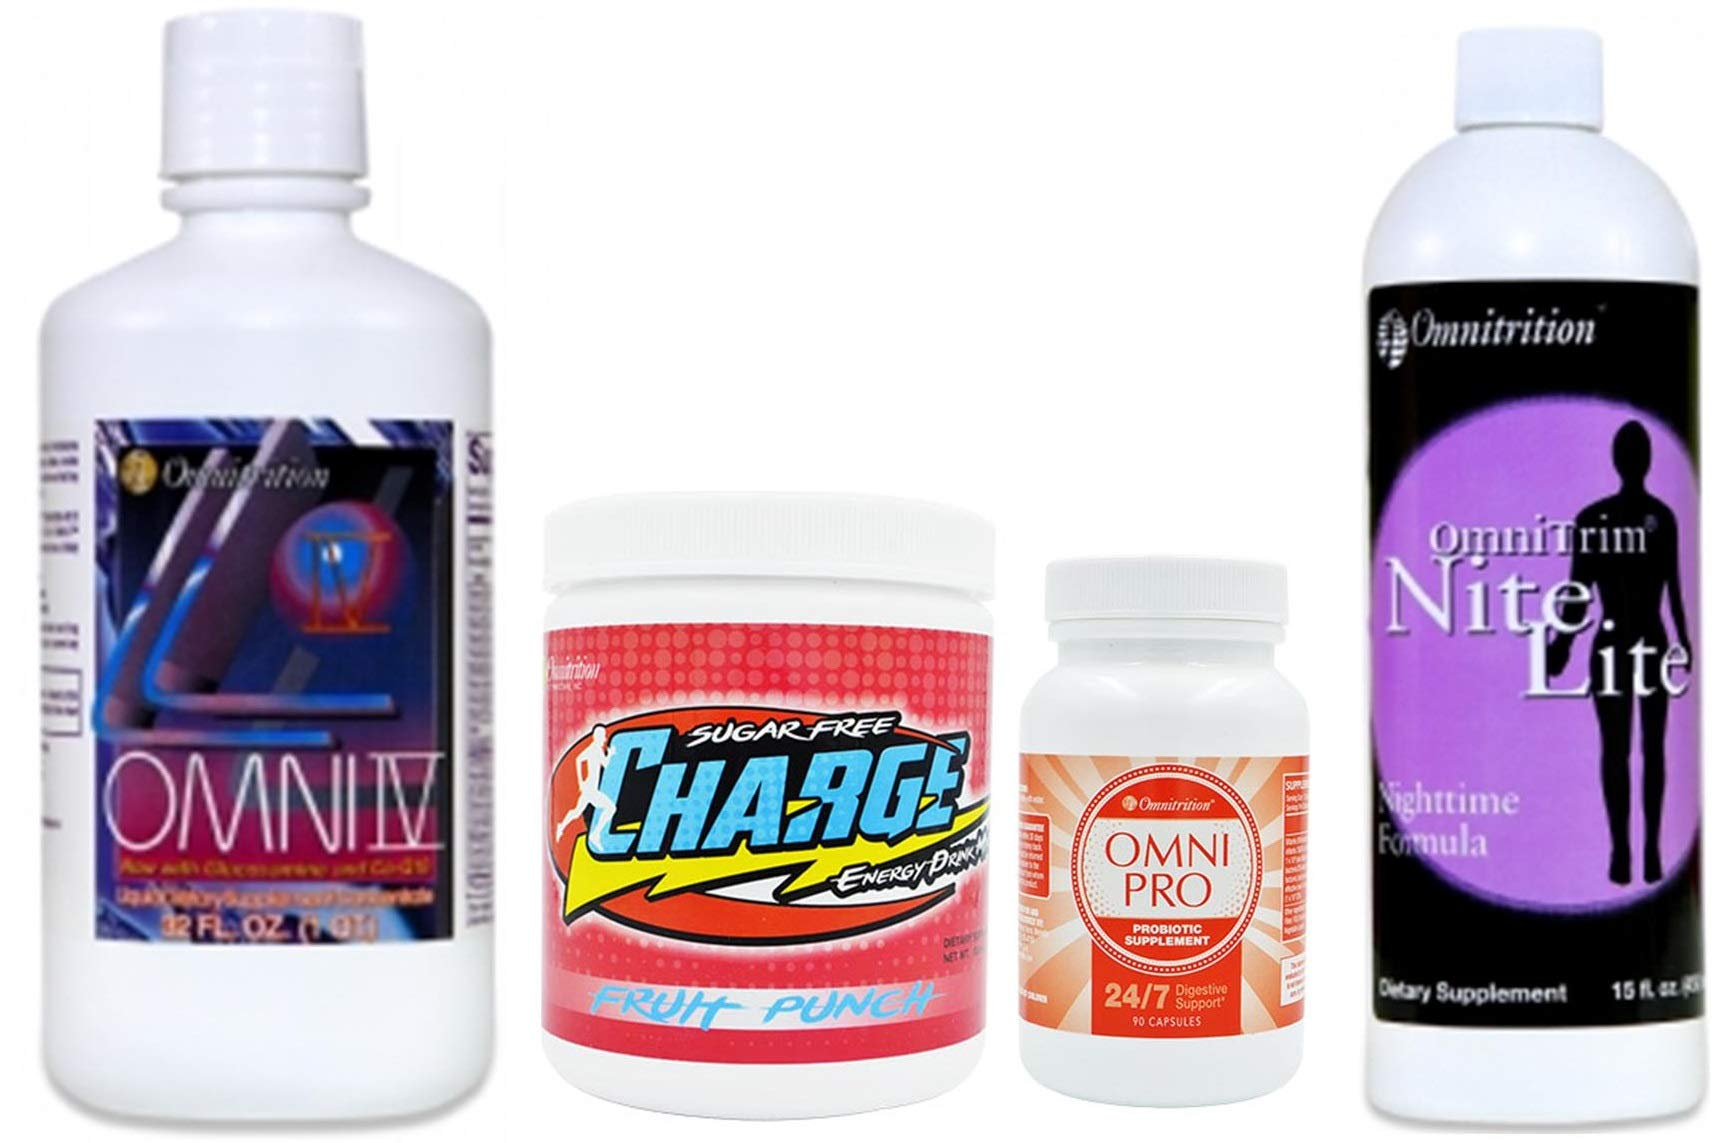 Omnitrition Bundle *Core 4* (Includes: Omni IV w/Glucosamine, OmniTrim Nite Lite, Omni Sugar Free Fruit Punch Charge and Omni Pro) by Generic